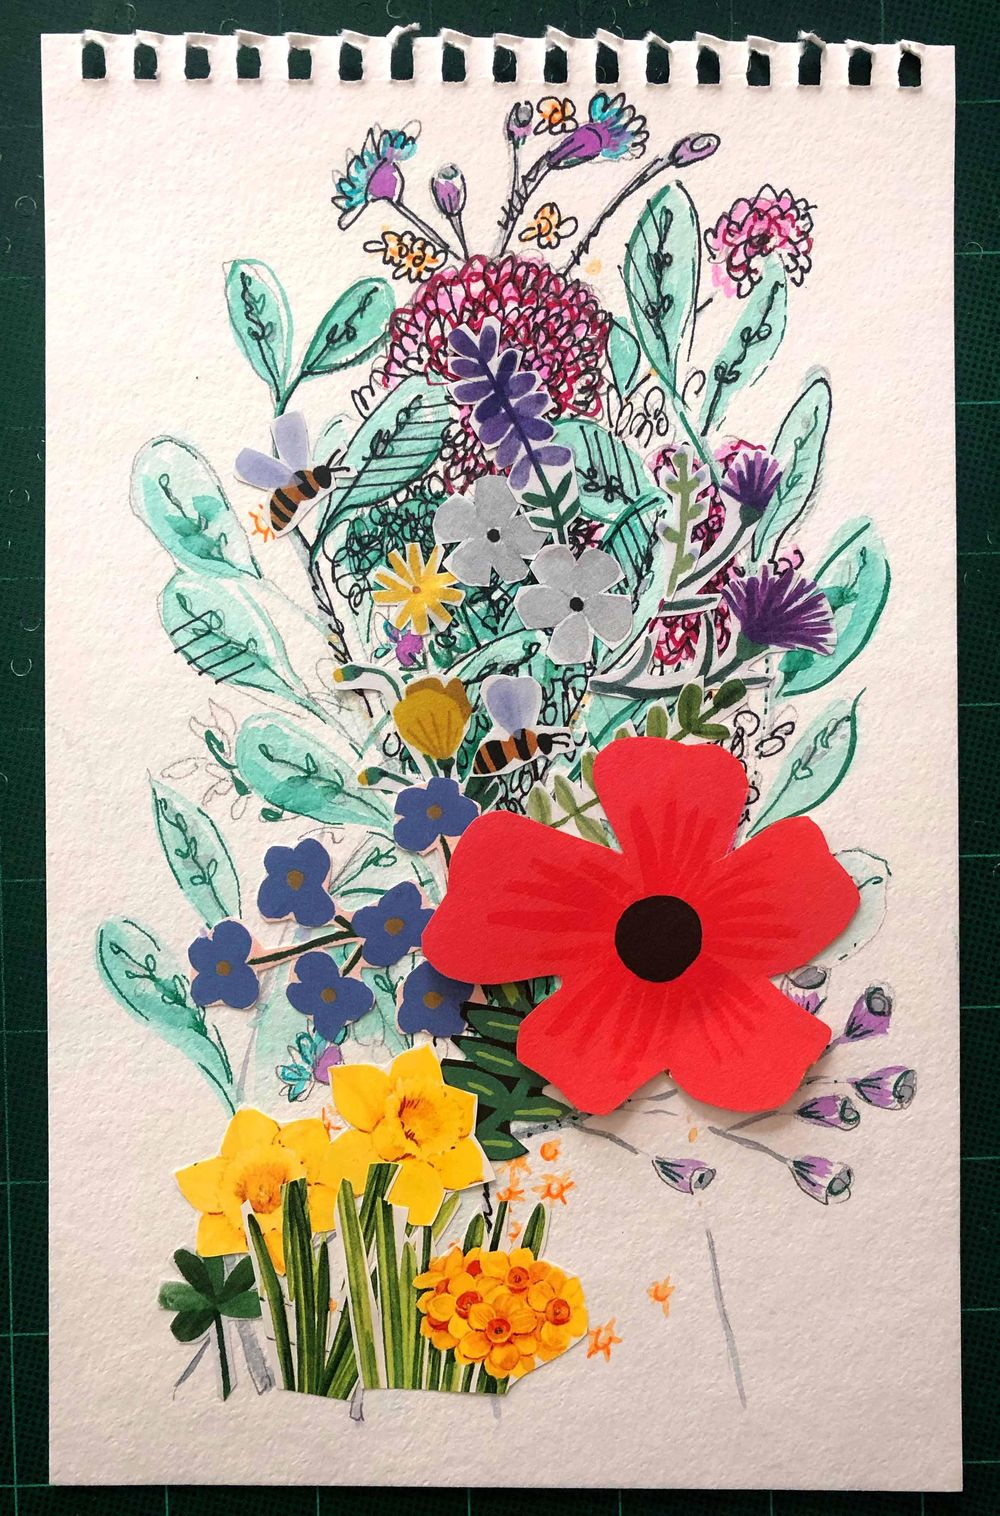 Making my own expressive florals - image 4 - student project